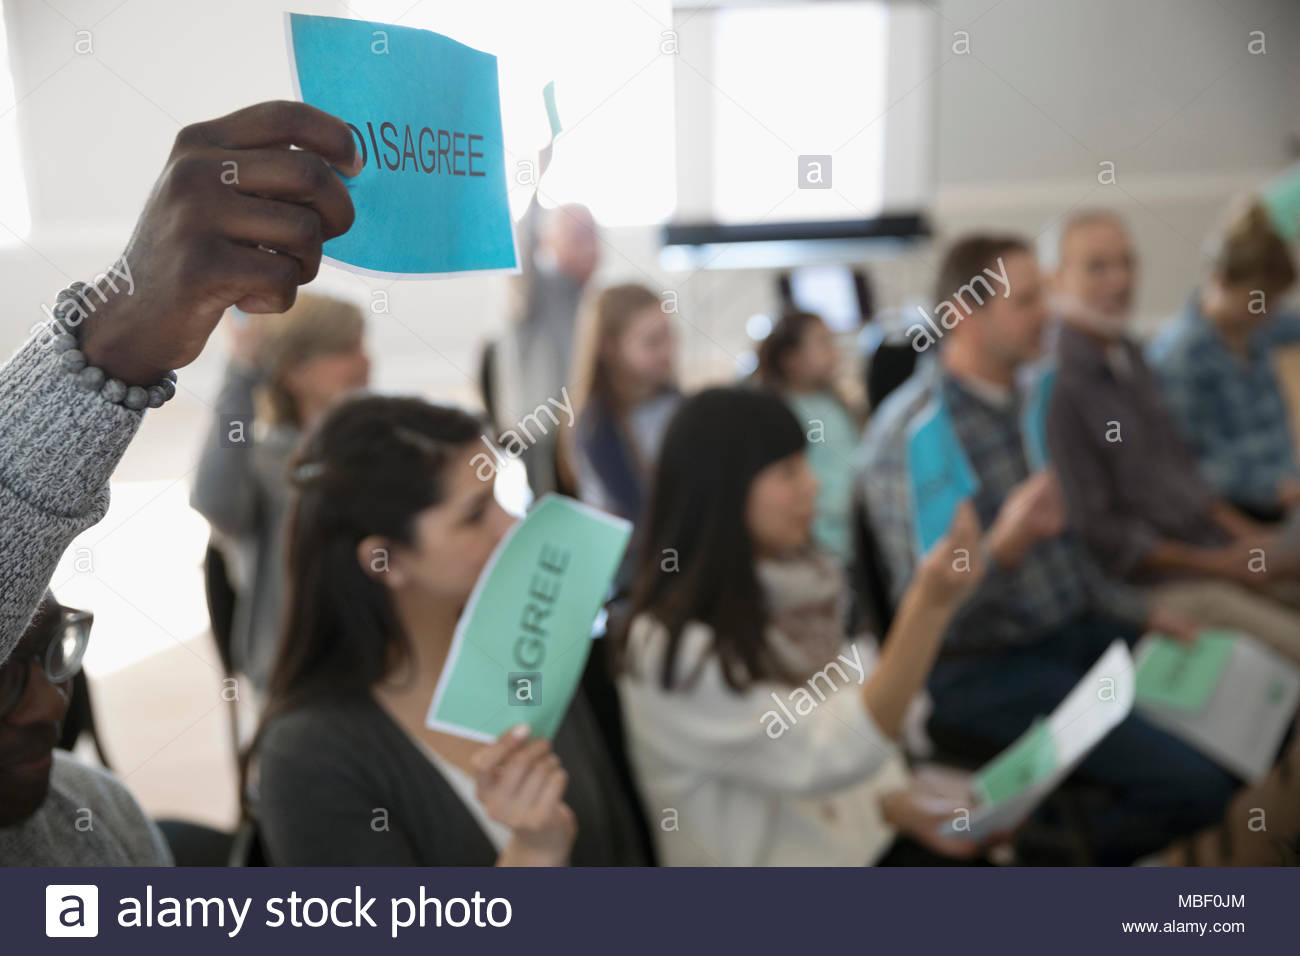 Audience voting with signs at town hall meeting - Stock Image